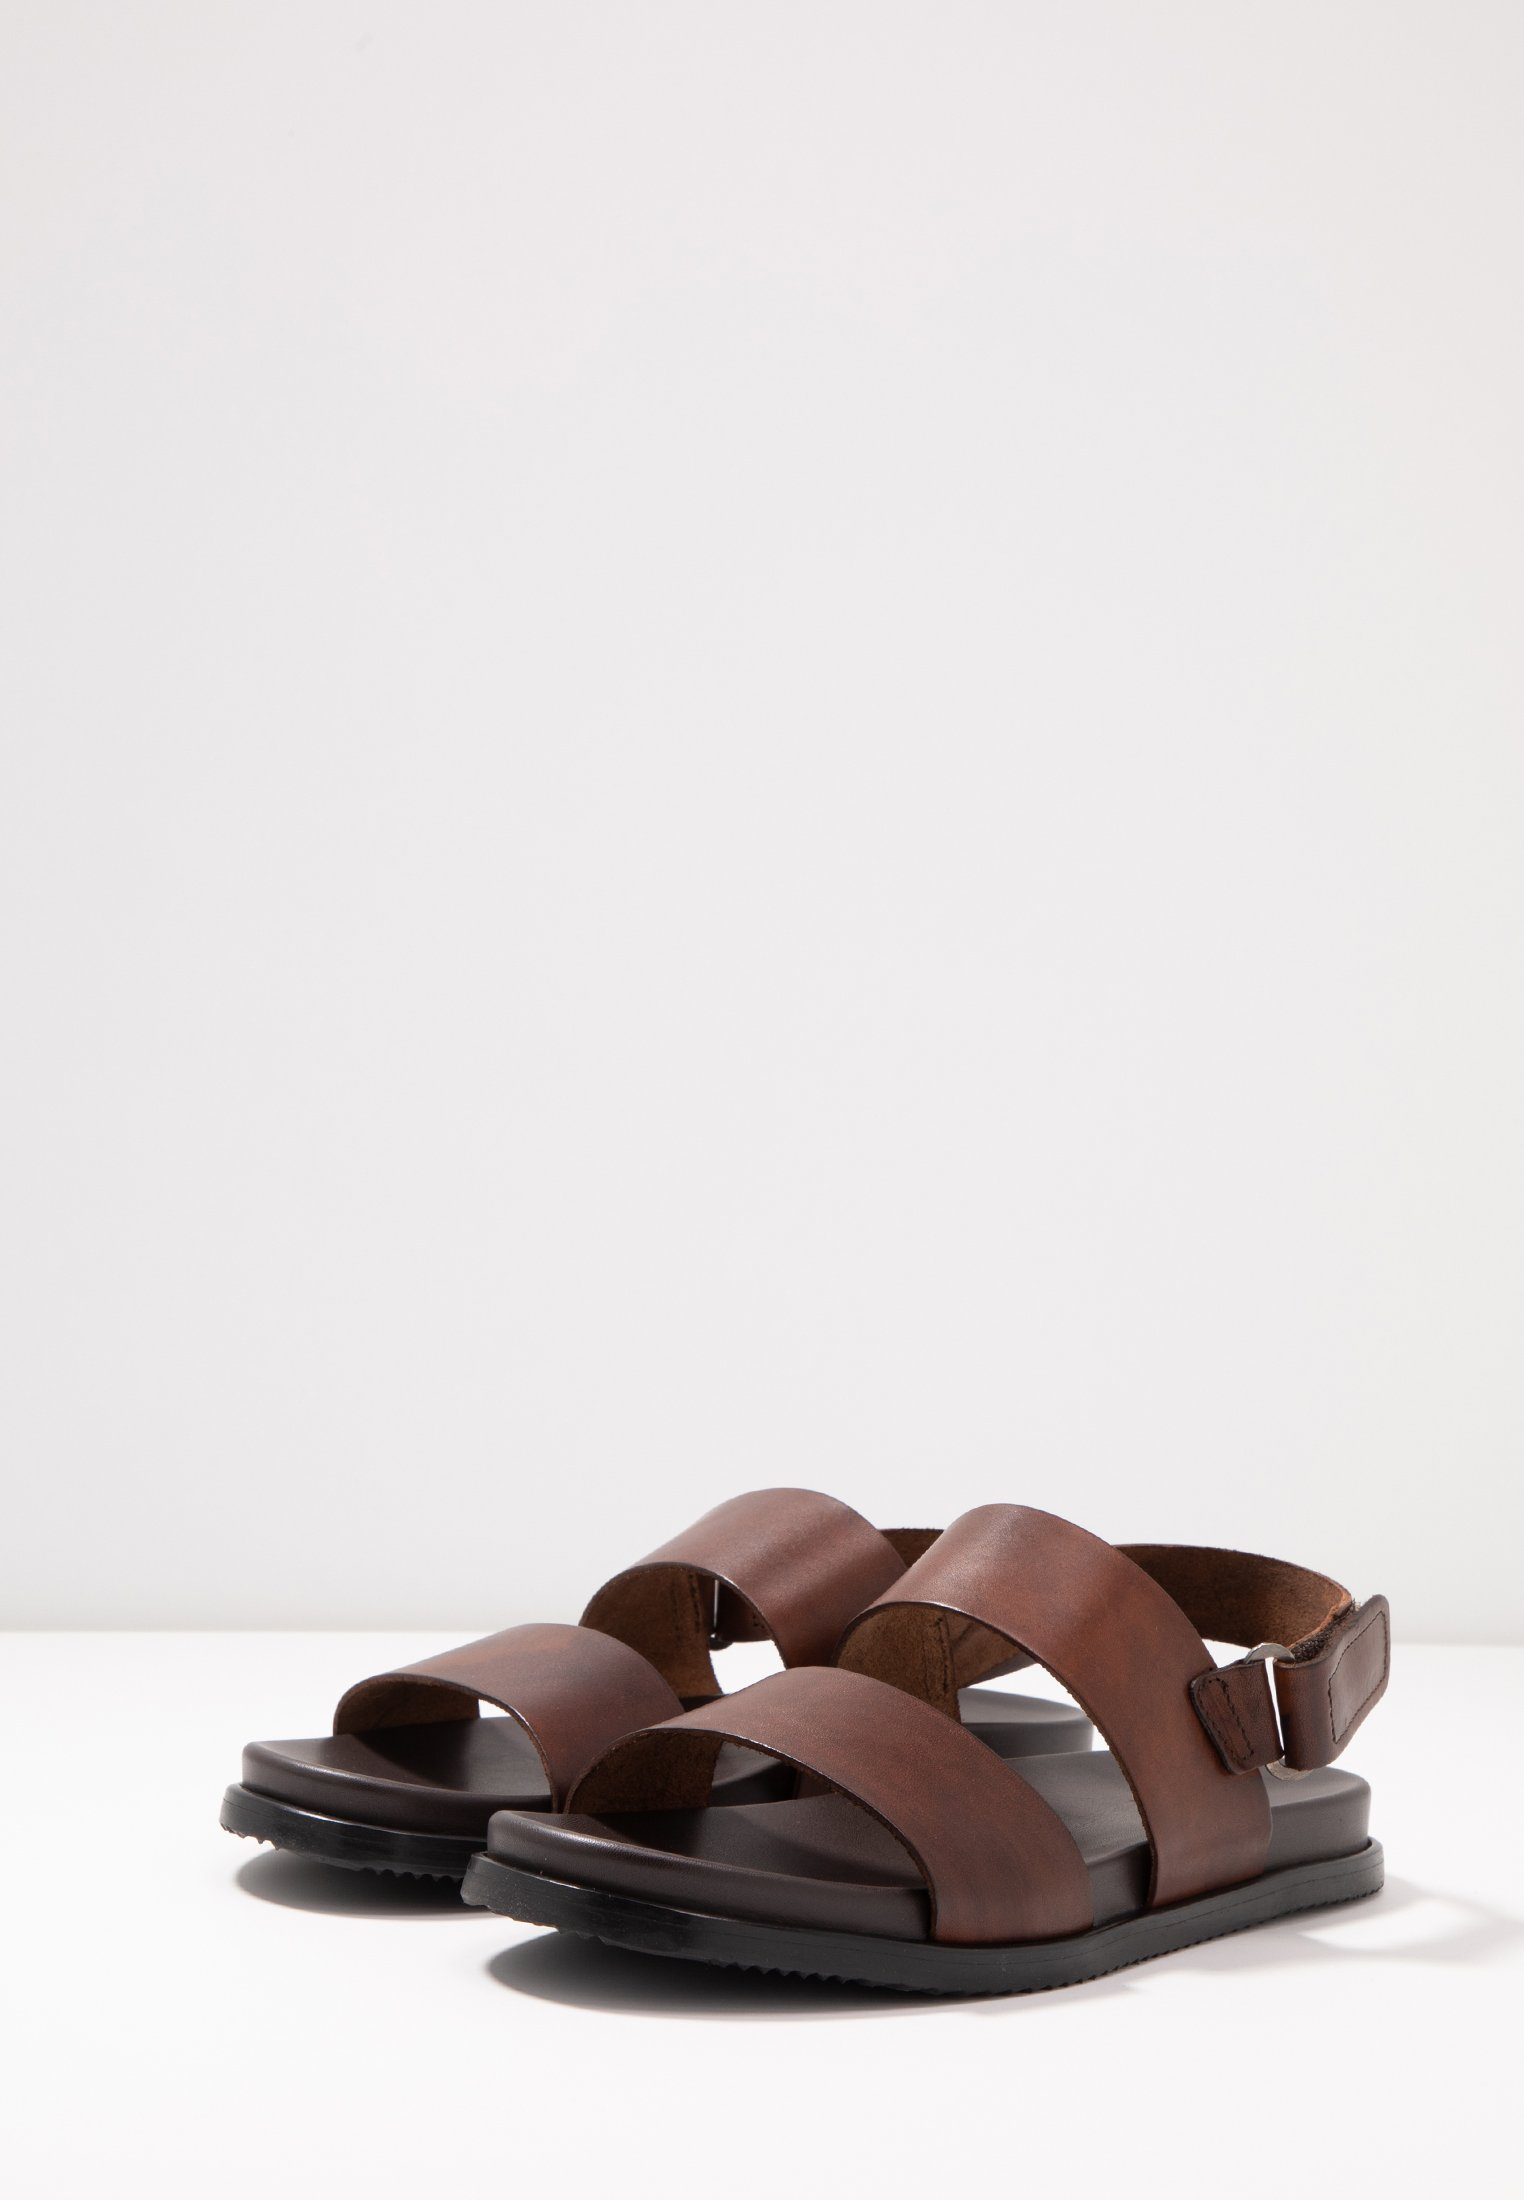 Zign Riemensandalette - Brown Black Friday